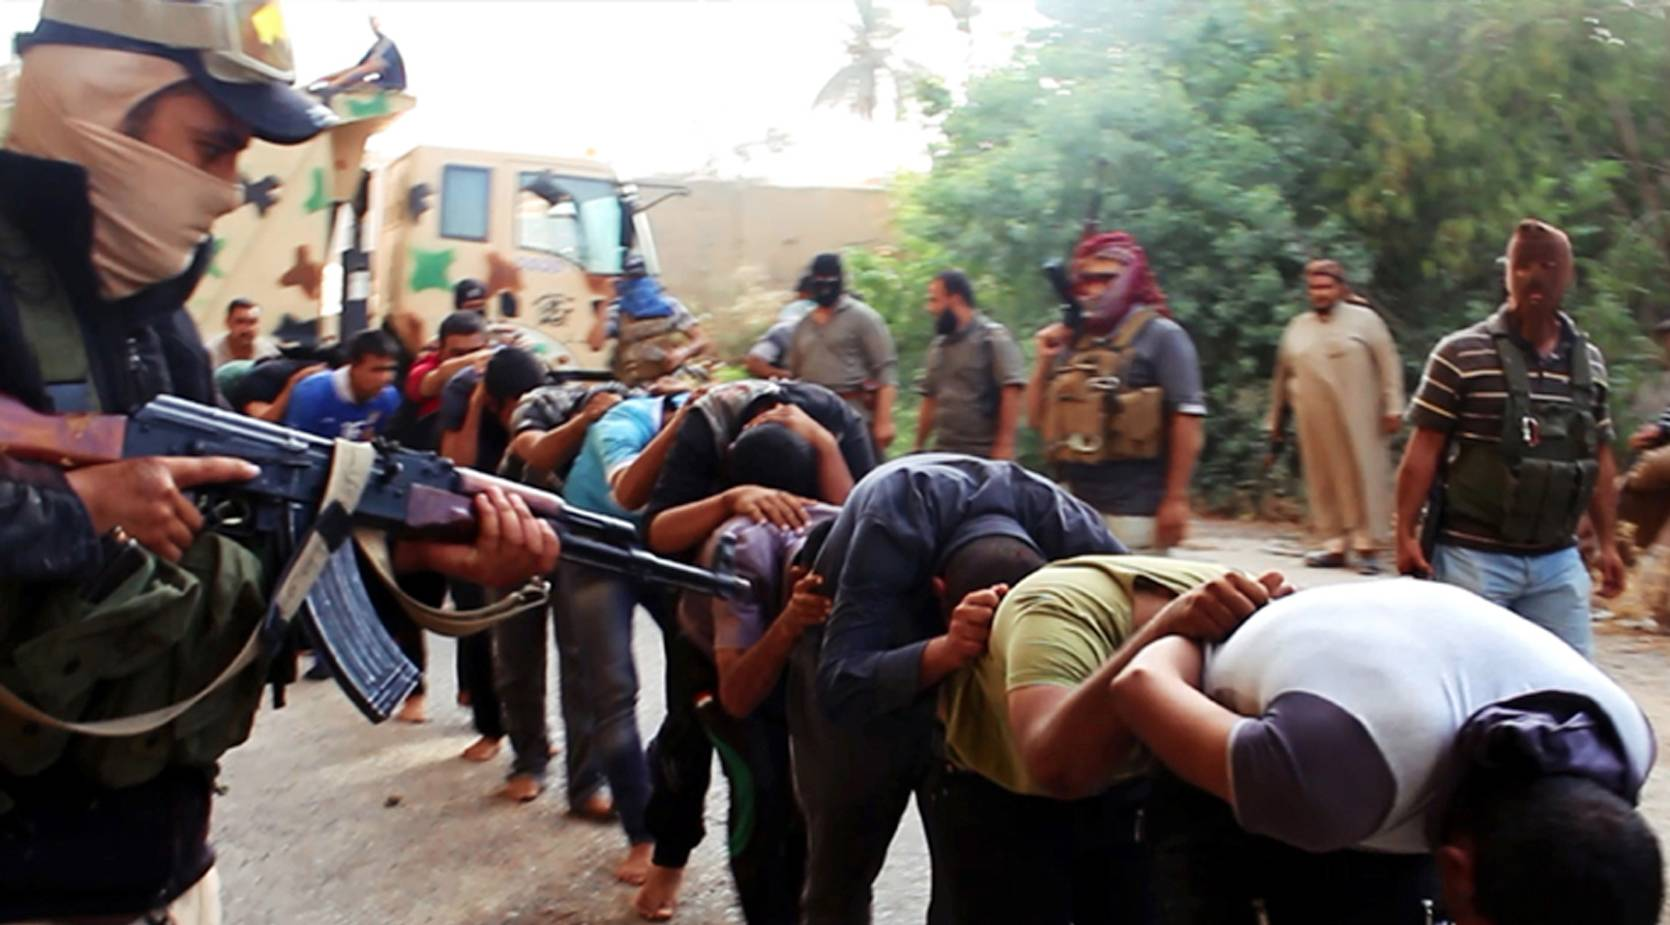 Human Rights Watch, a leading international watchdog, said Wednesday, Sept 3, 2014, new evidence indicates the Islamic State fighters killed between 560 and 770 men captured at Camp Speicher, near the city of Tikrit — a figure several times higher than what was initially reported.